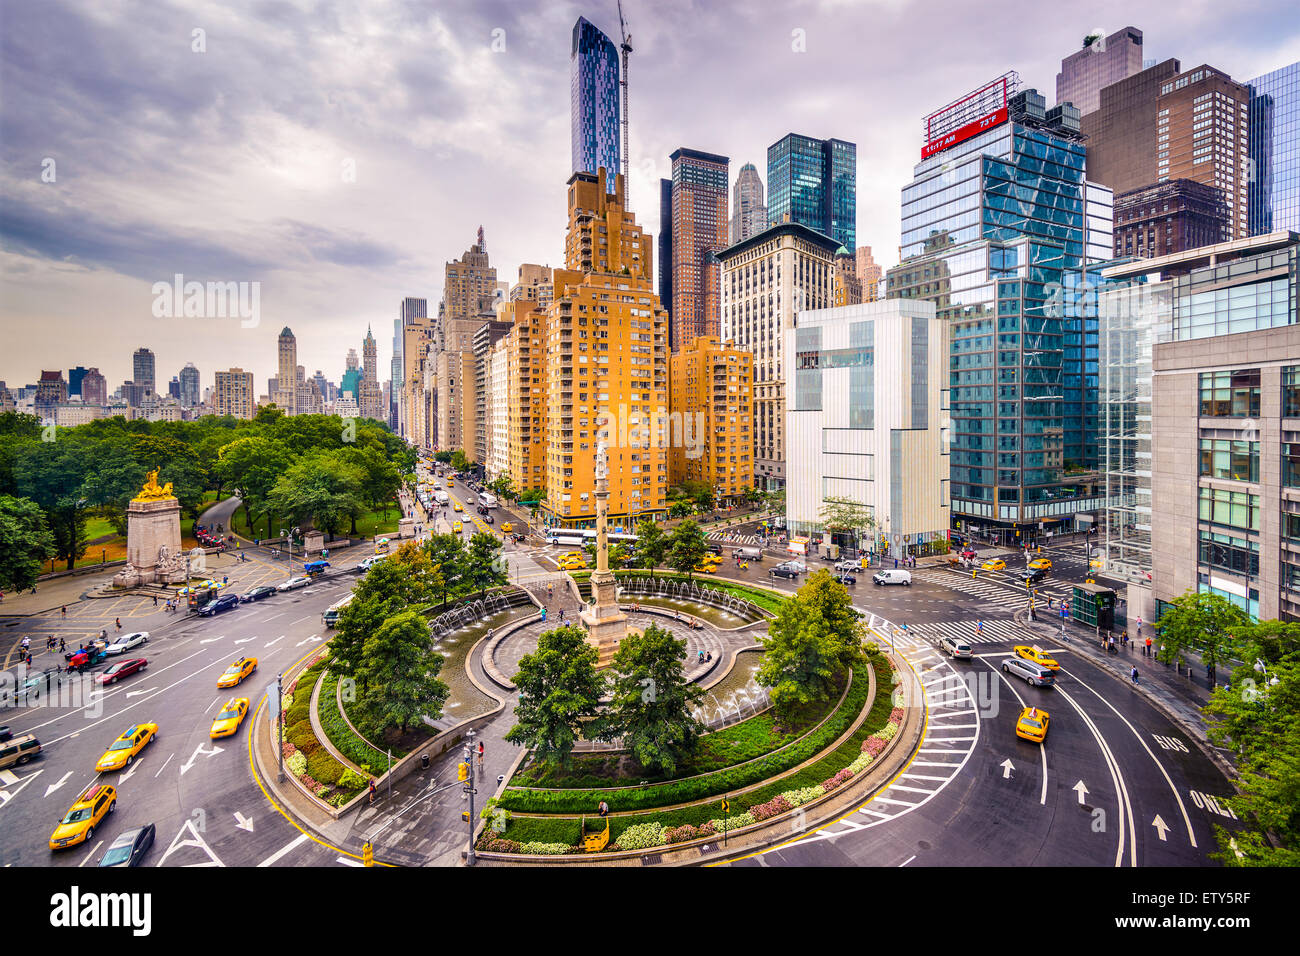 New York City, USA Stadtbild am Columbus Circle. Stockbild